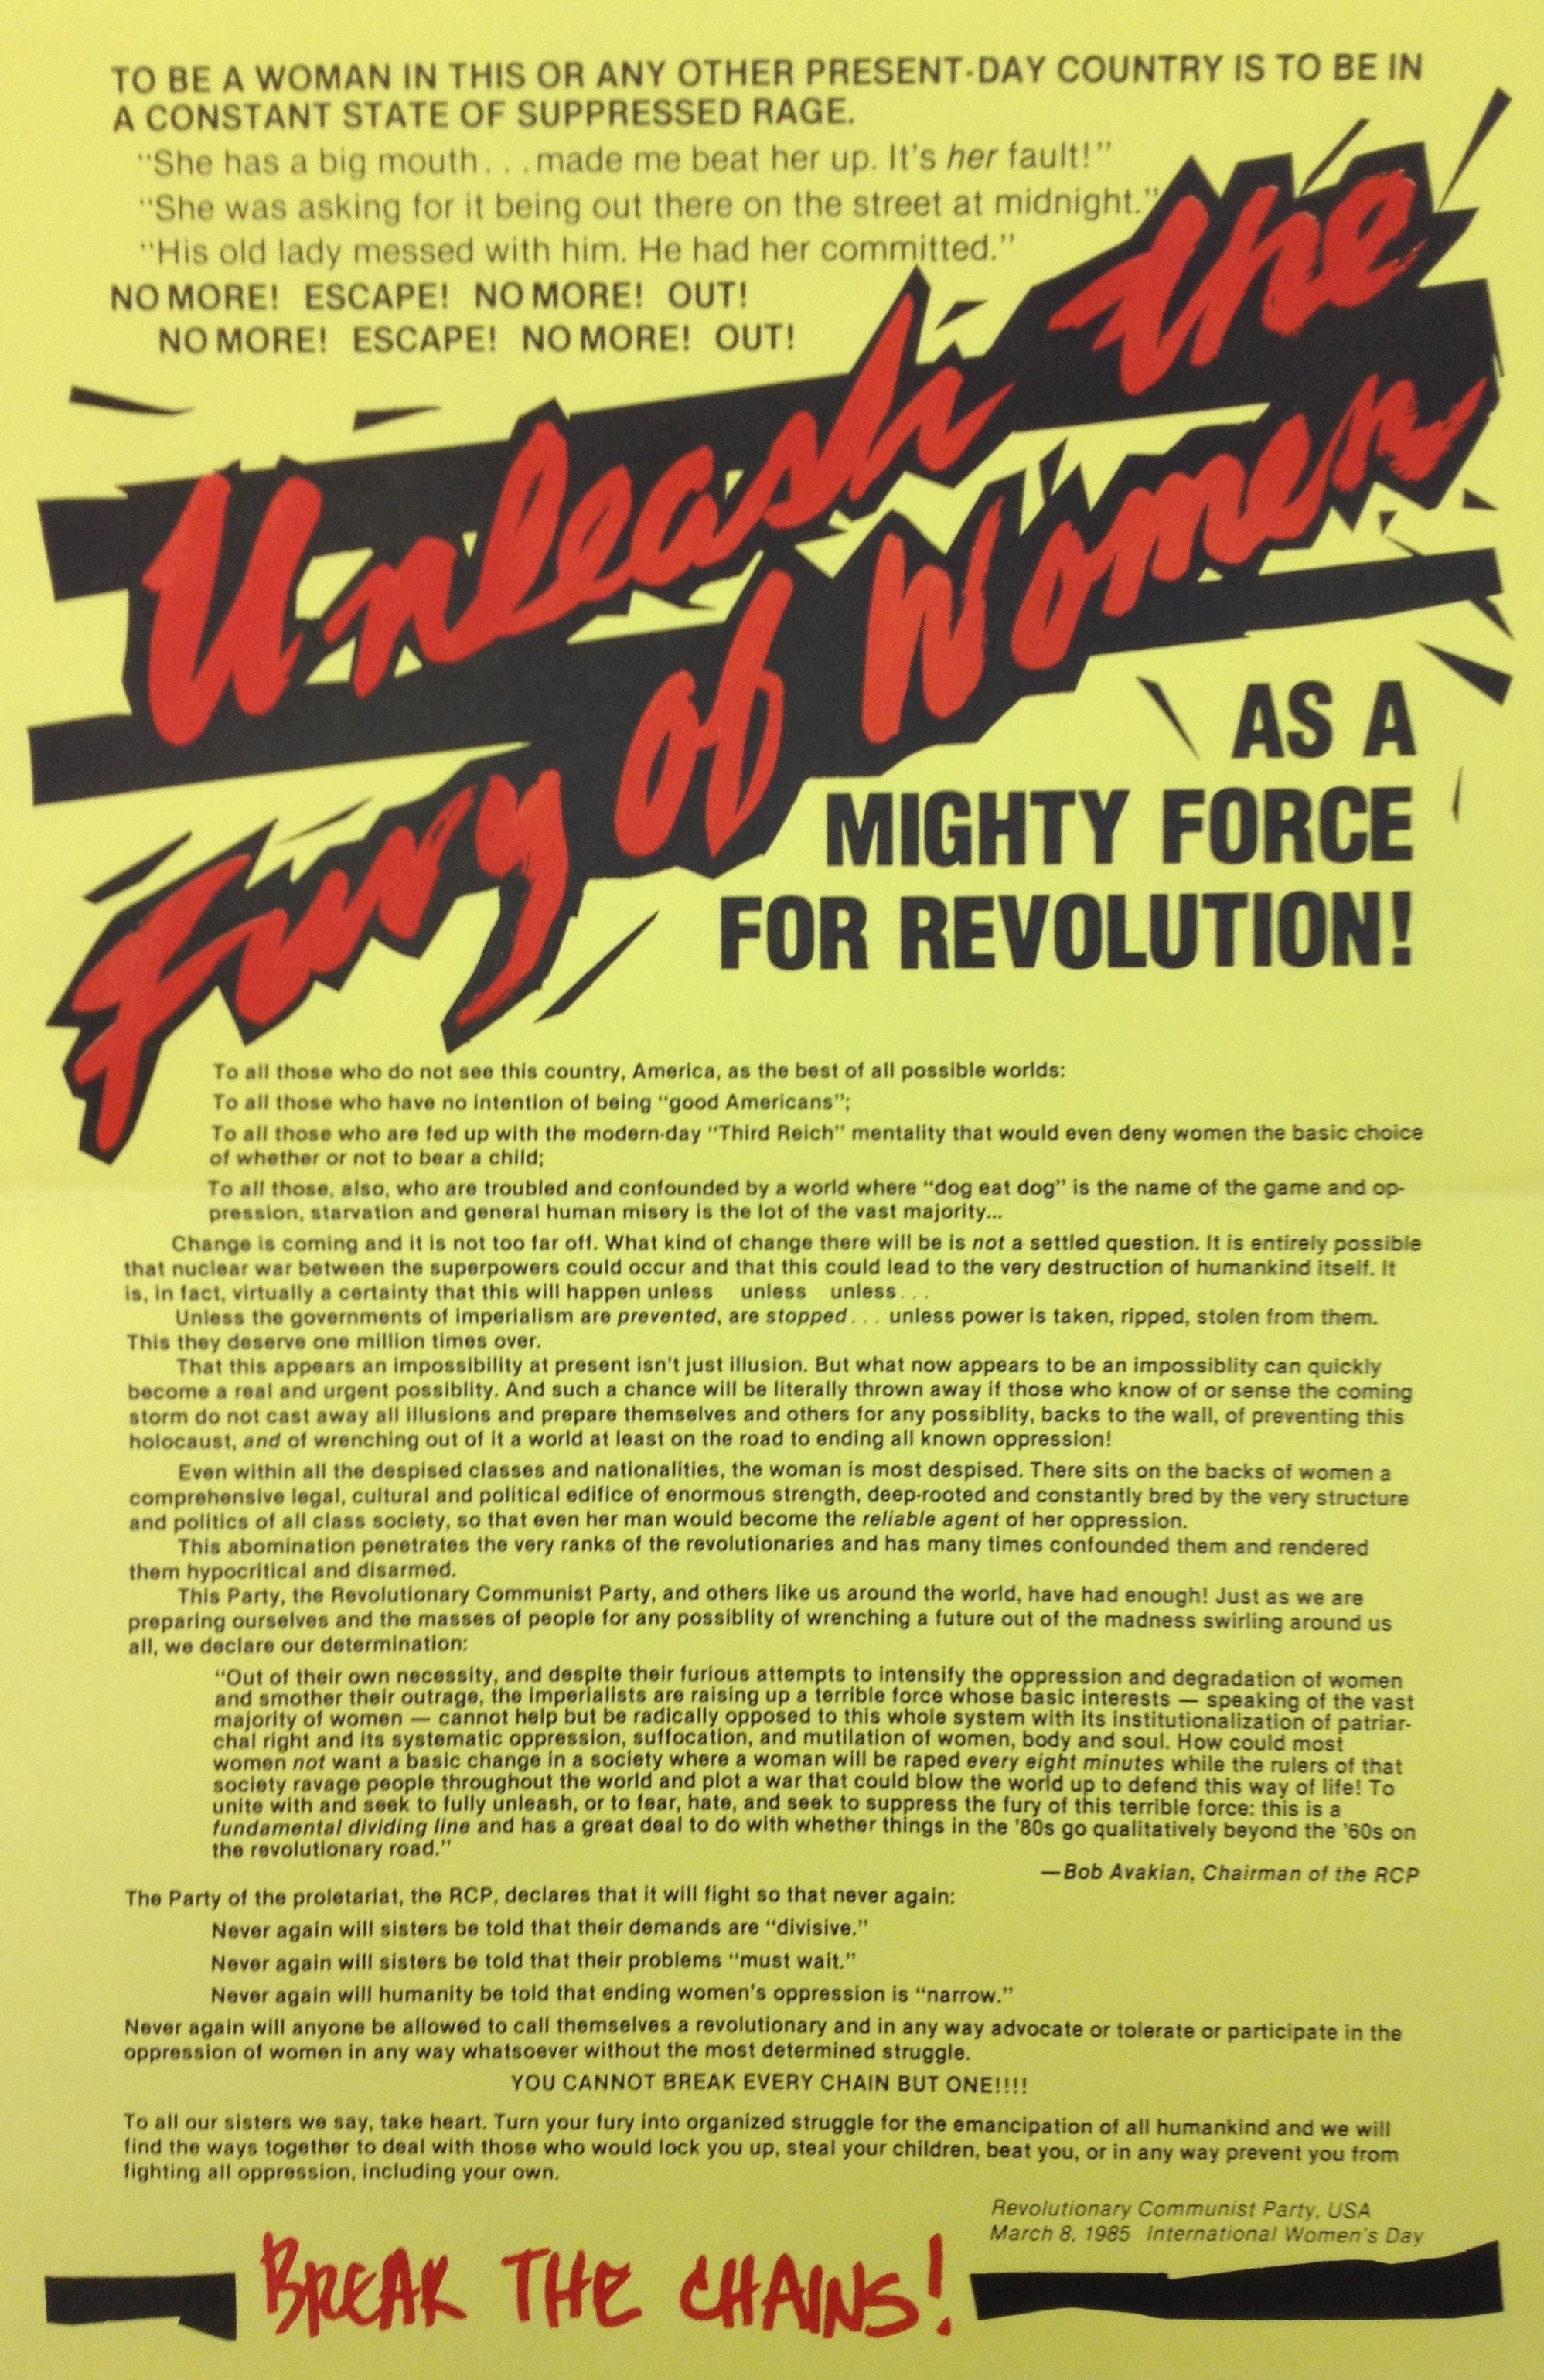 Revolutionary Communist Party, USA